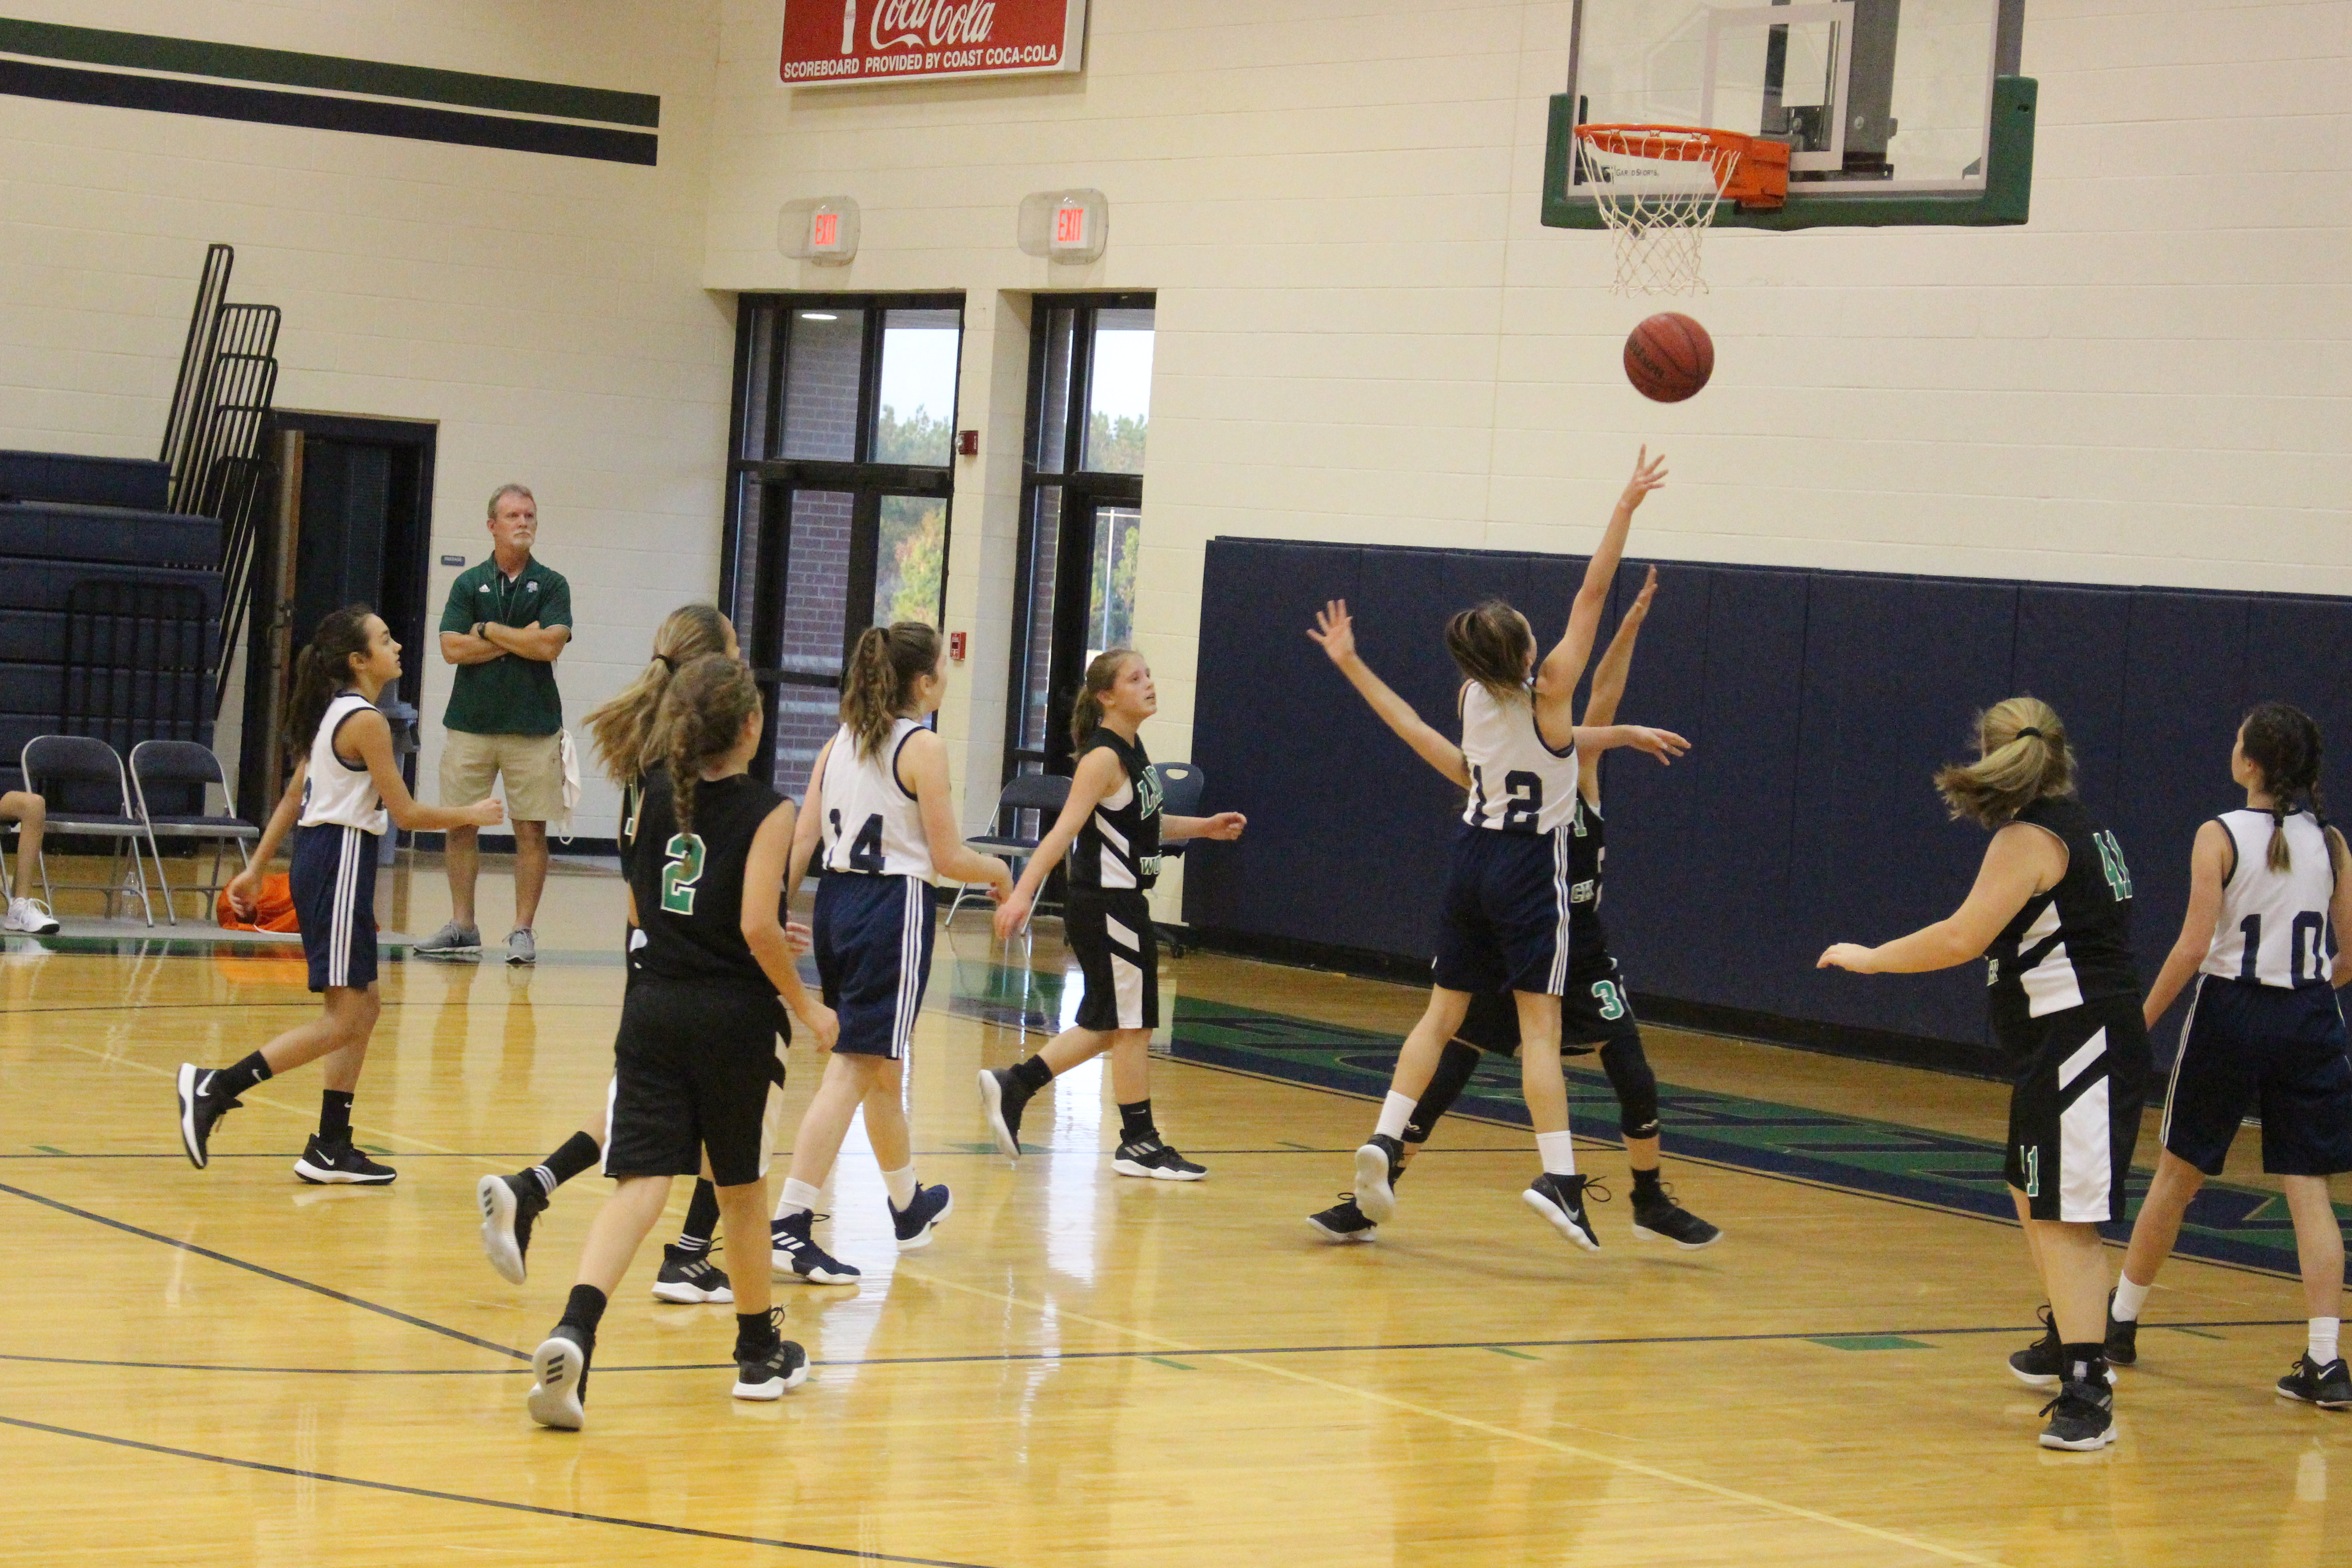 Seventh and eighth grade basketball teams face West Wortham